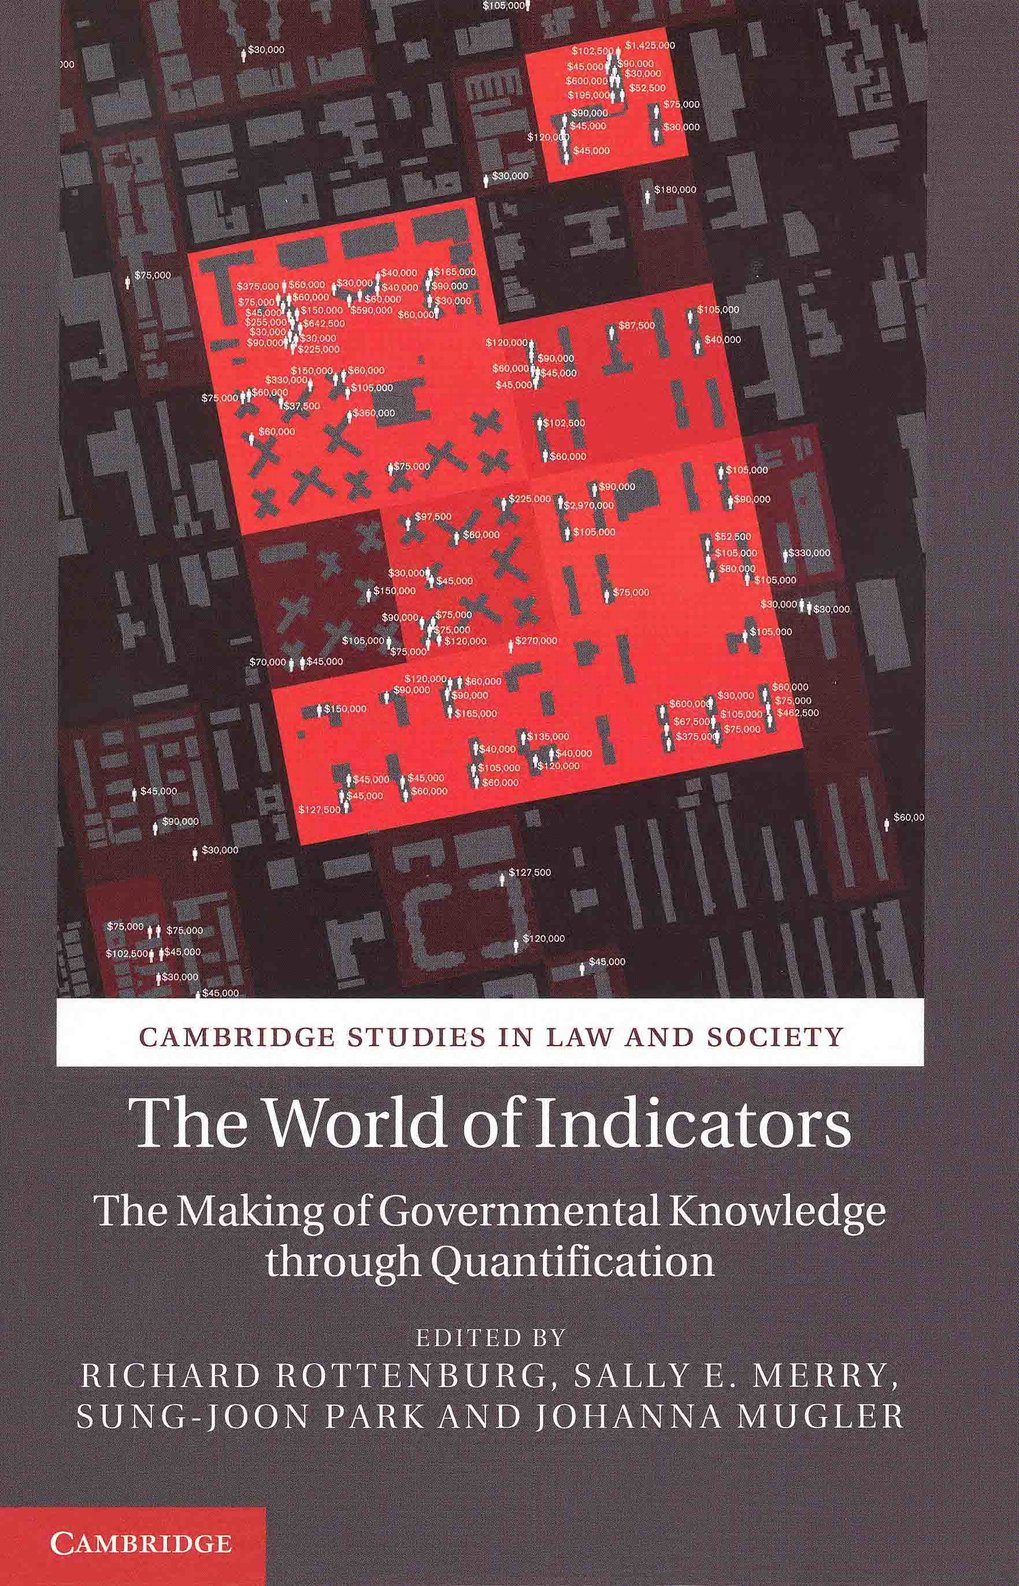 The World of Indicators. The making of governmental knowledge through quantification